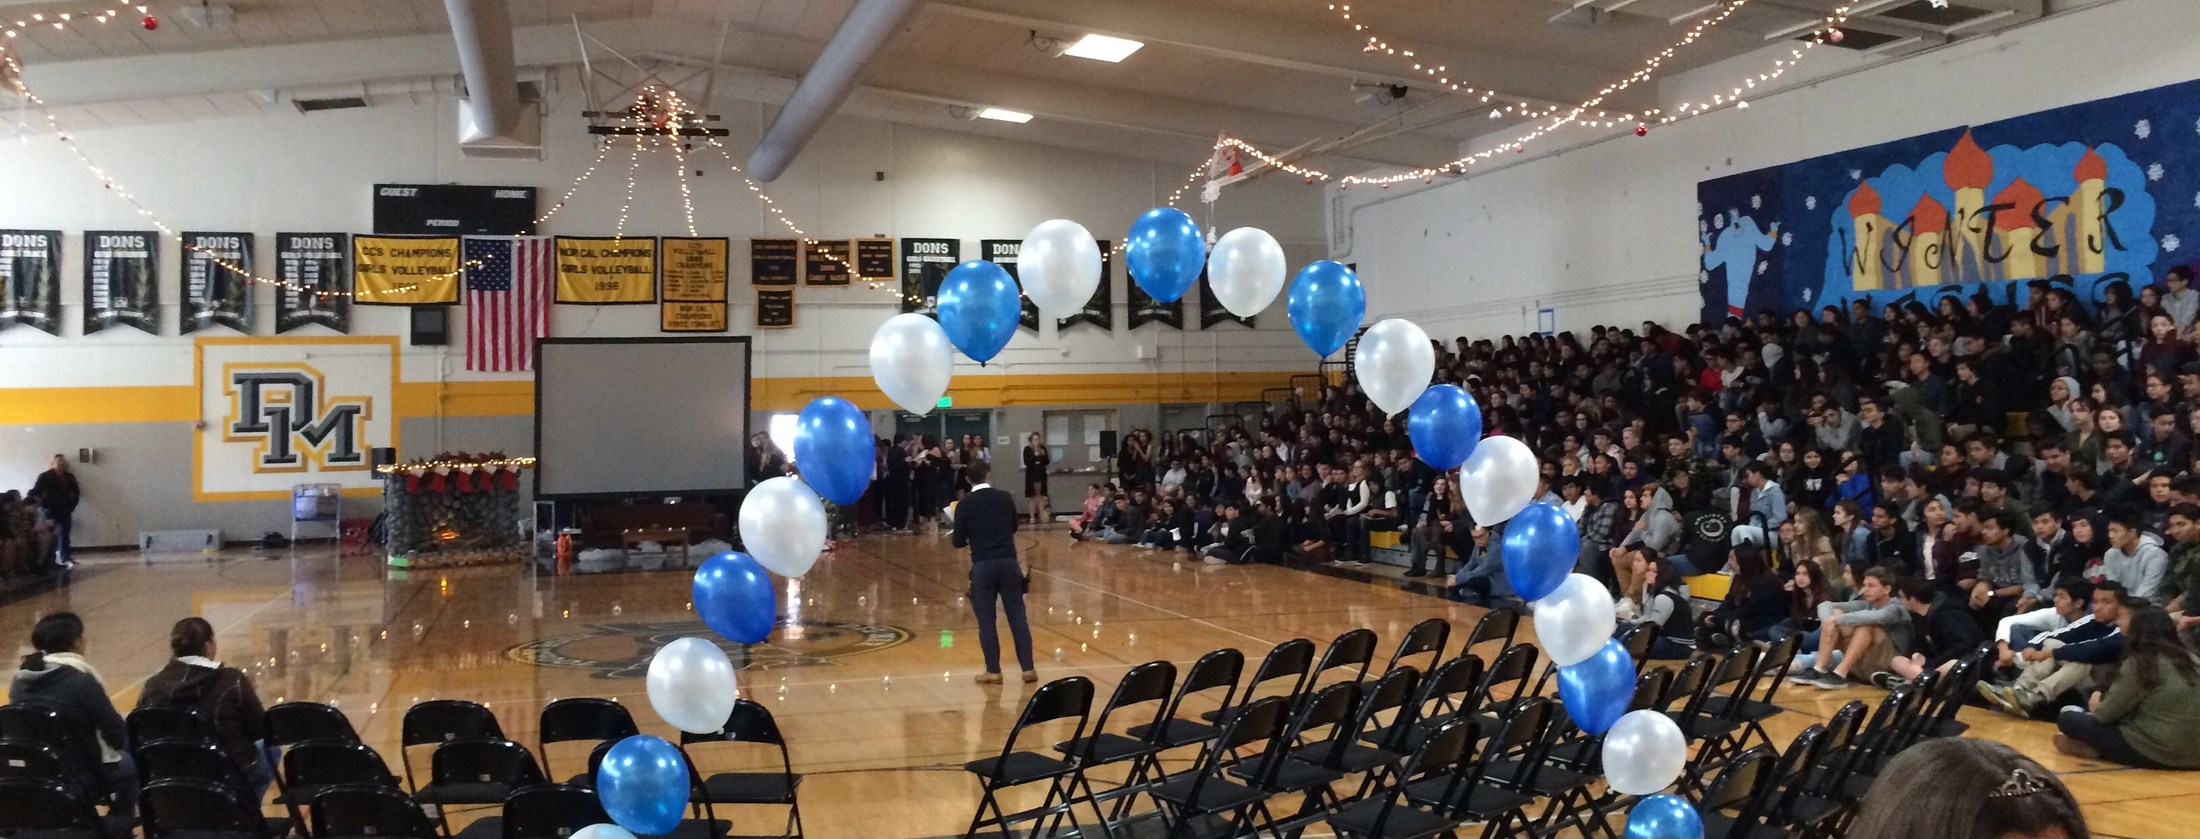 Image of school gym during 2017 winter wishes event